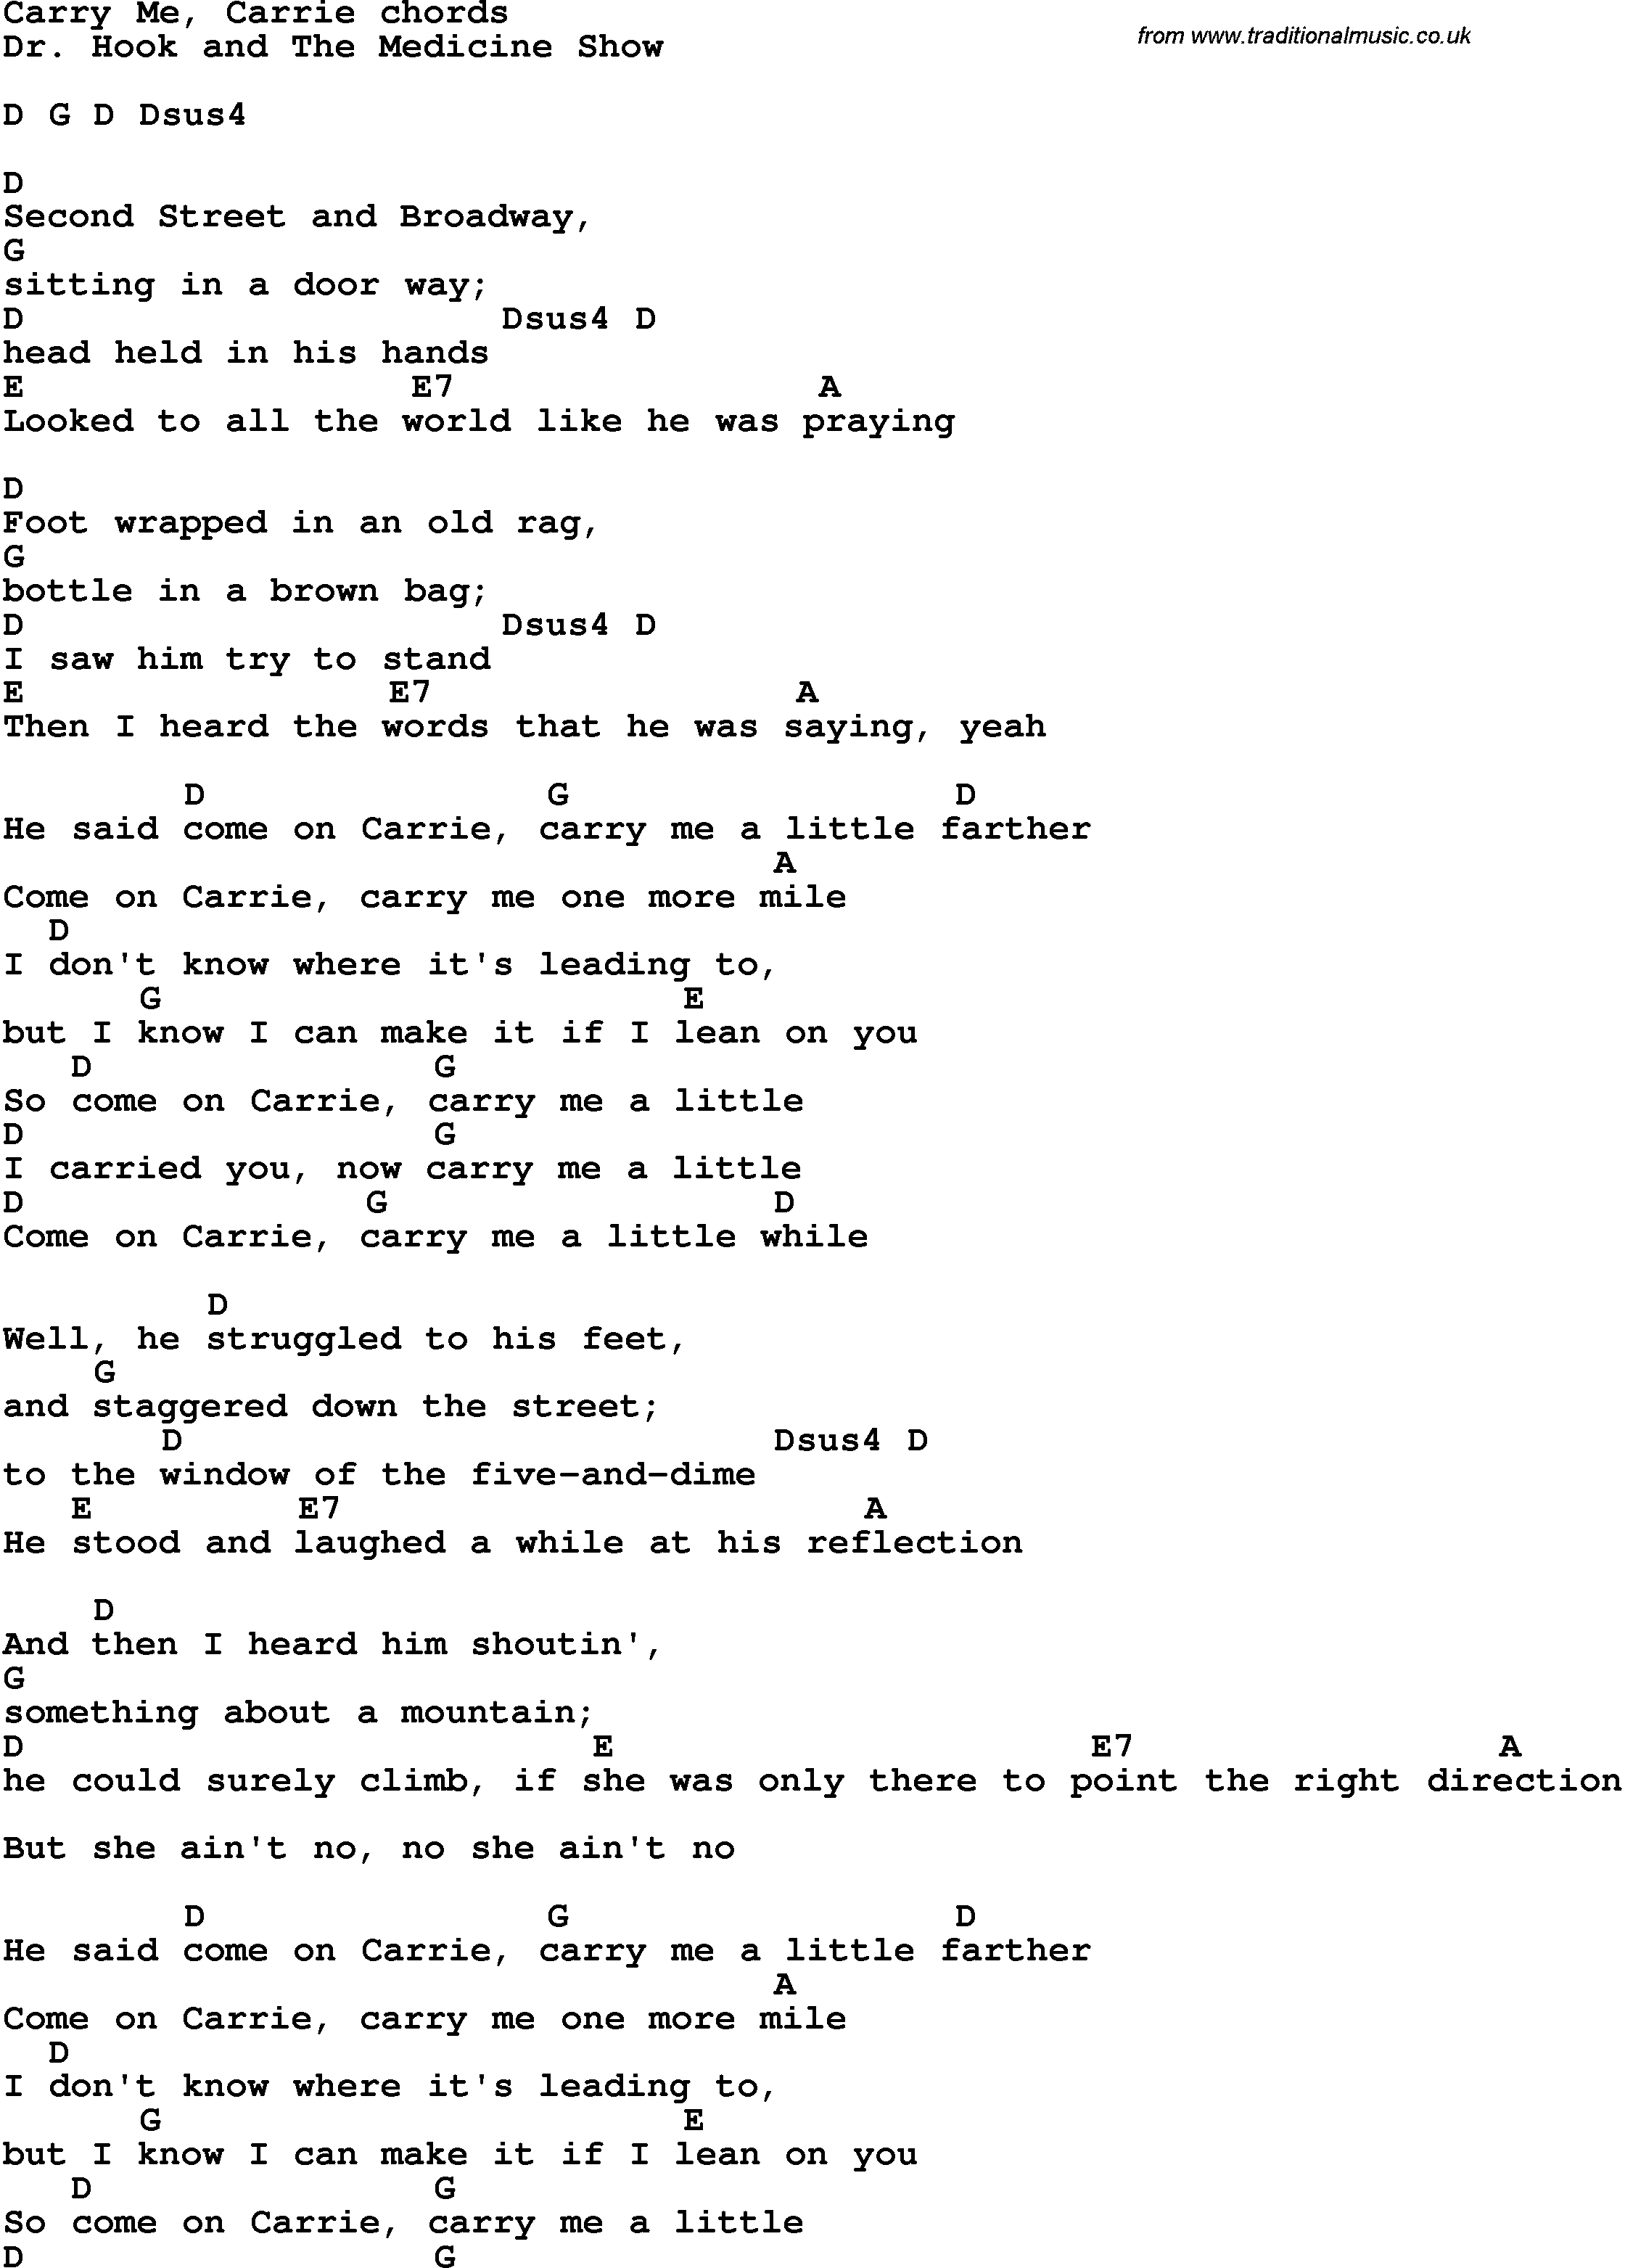 Song Lyrics With Guitar Chords For Carry Me Carrie